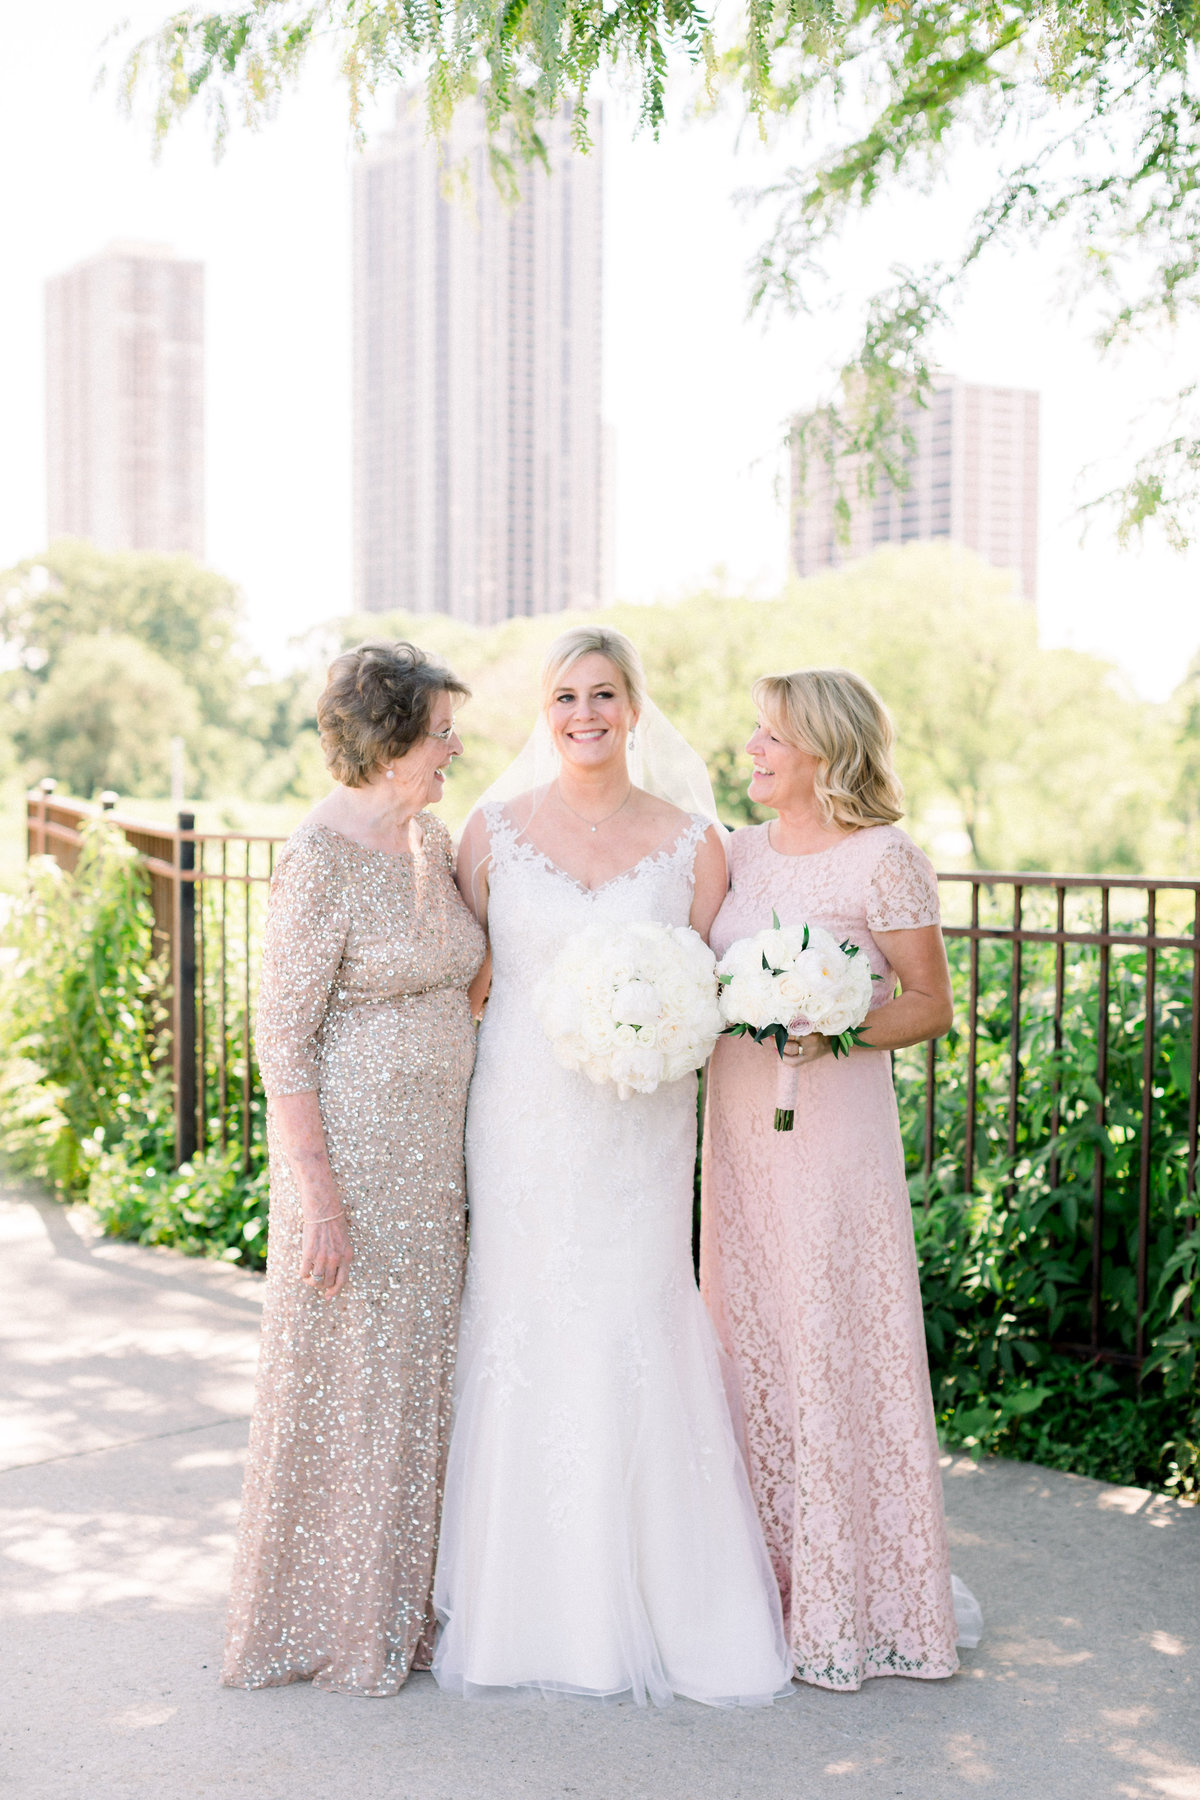 TiffaneyChildsPhotography-ChicagoWeddingPhotographer-Christine+Patrick-MundeleinAuditoriumWedding-FamilyFormals-4